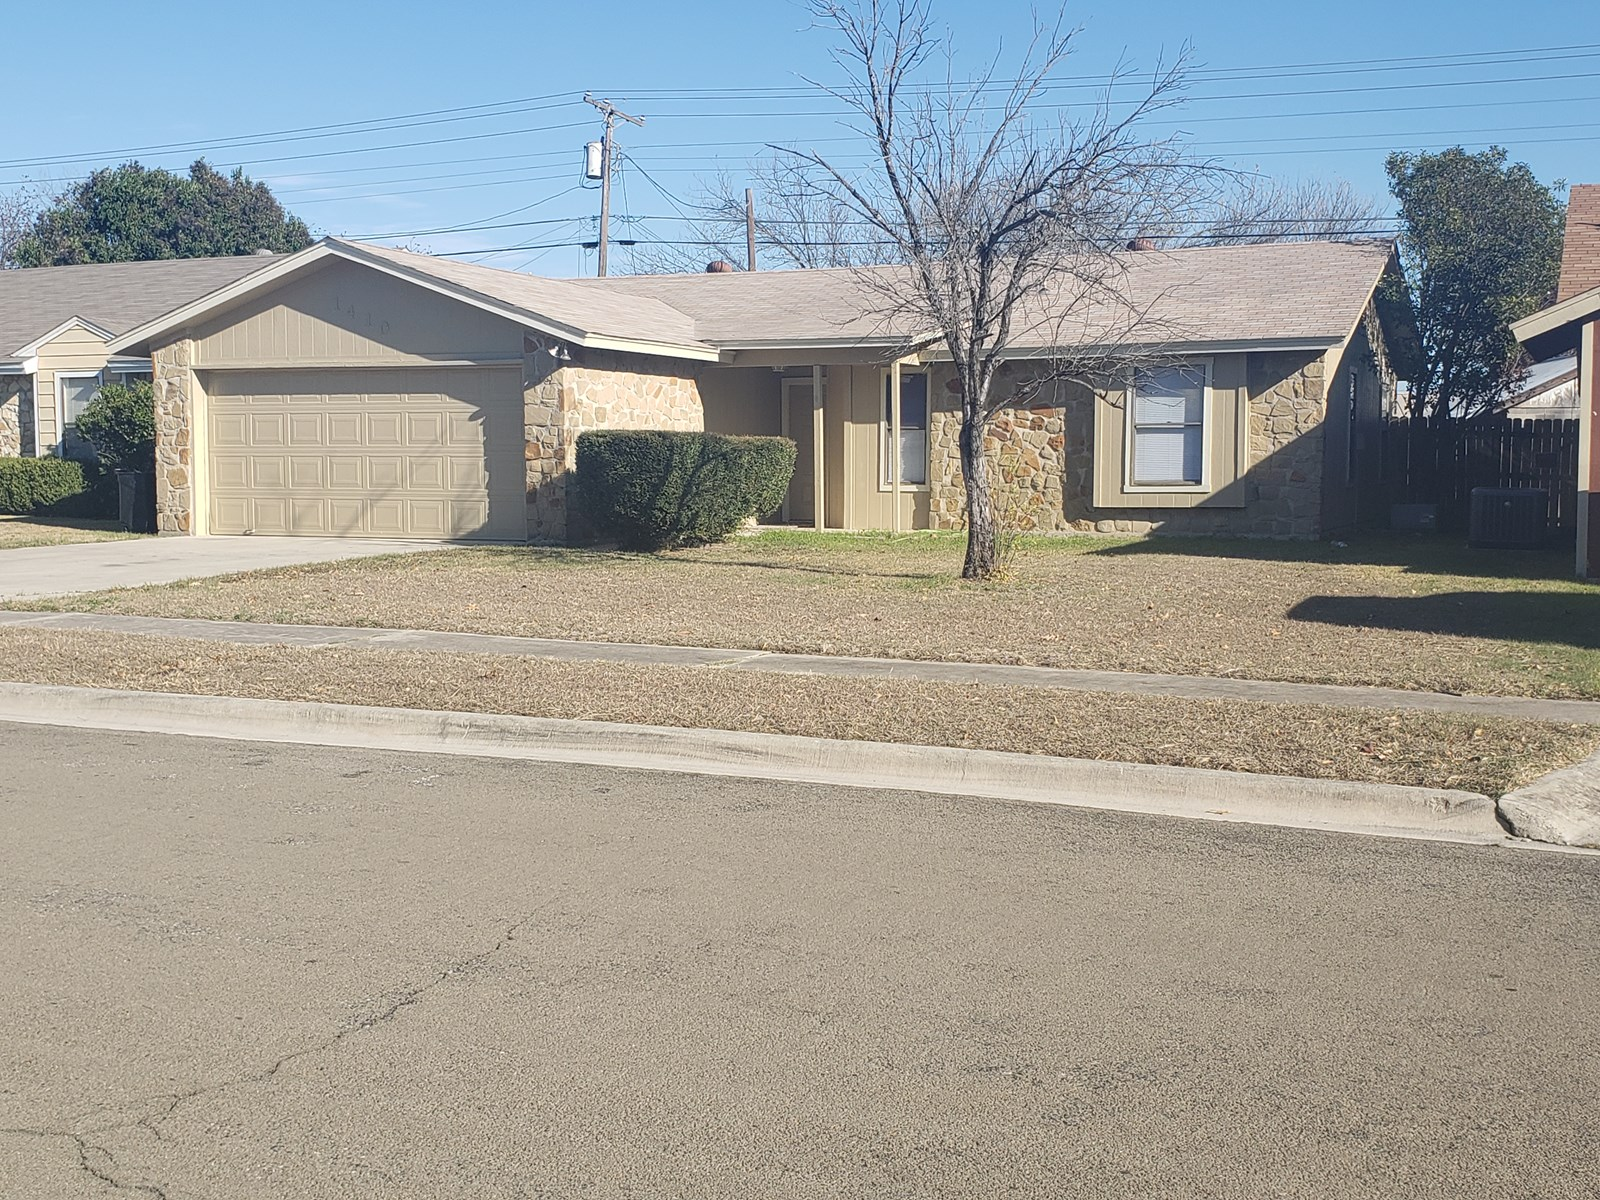 3 Bed 2 Bath Home For Sale South  Killeen TX $95,000!